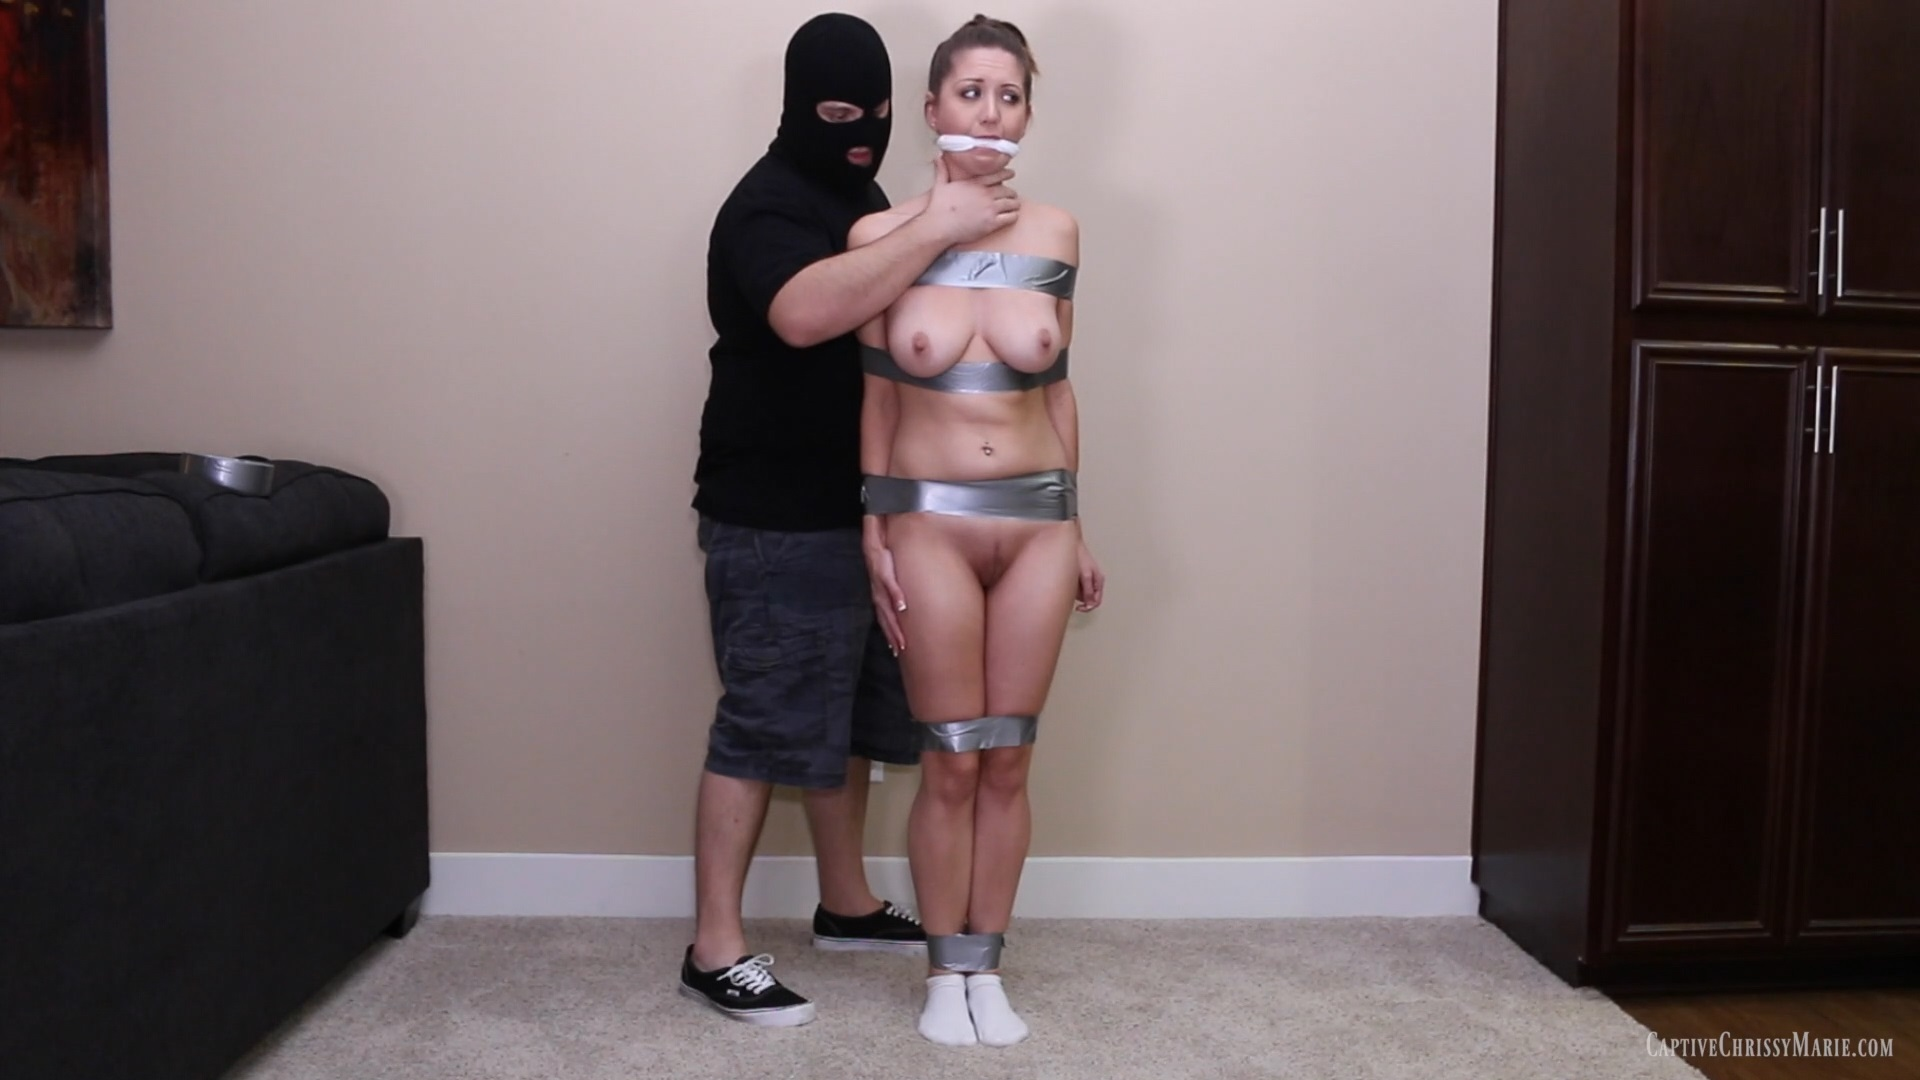 Wrapped and Gagged For Shipment